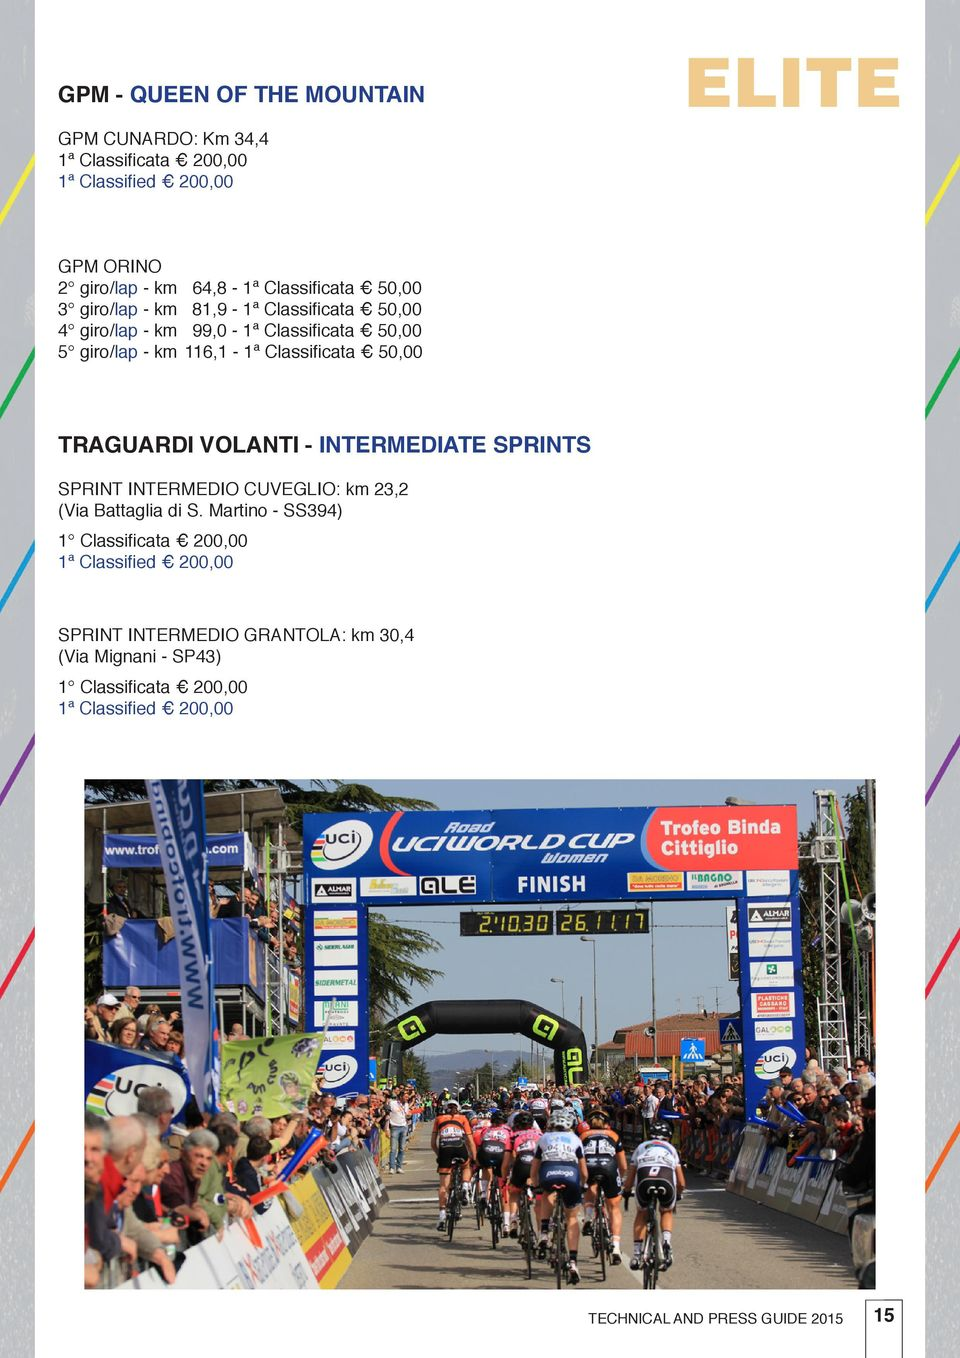 Classificata 50,00 TRAGUARDI VOLANTI - INTERMEDIATE SPRINTS SPRINT INTERMEDIO CUVEGLIO: km 23,2 (Via Battaglia di S.